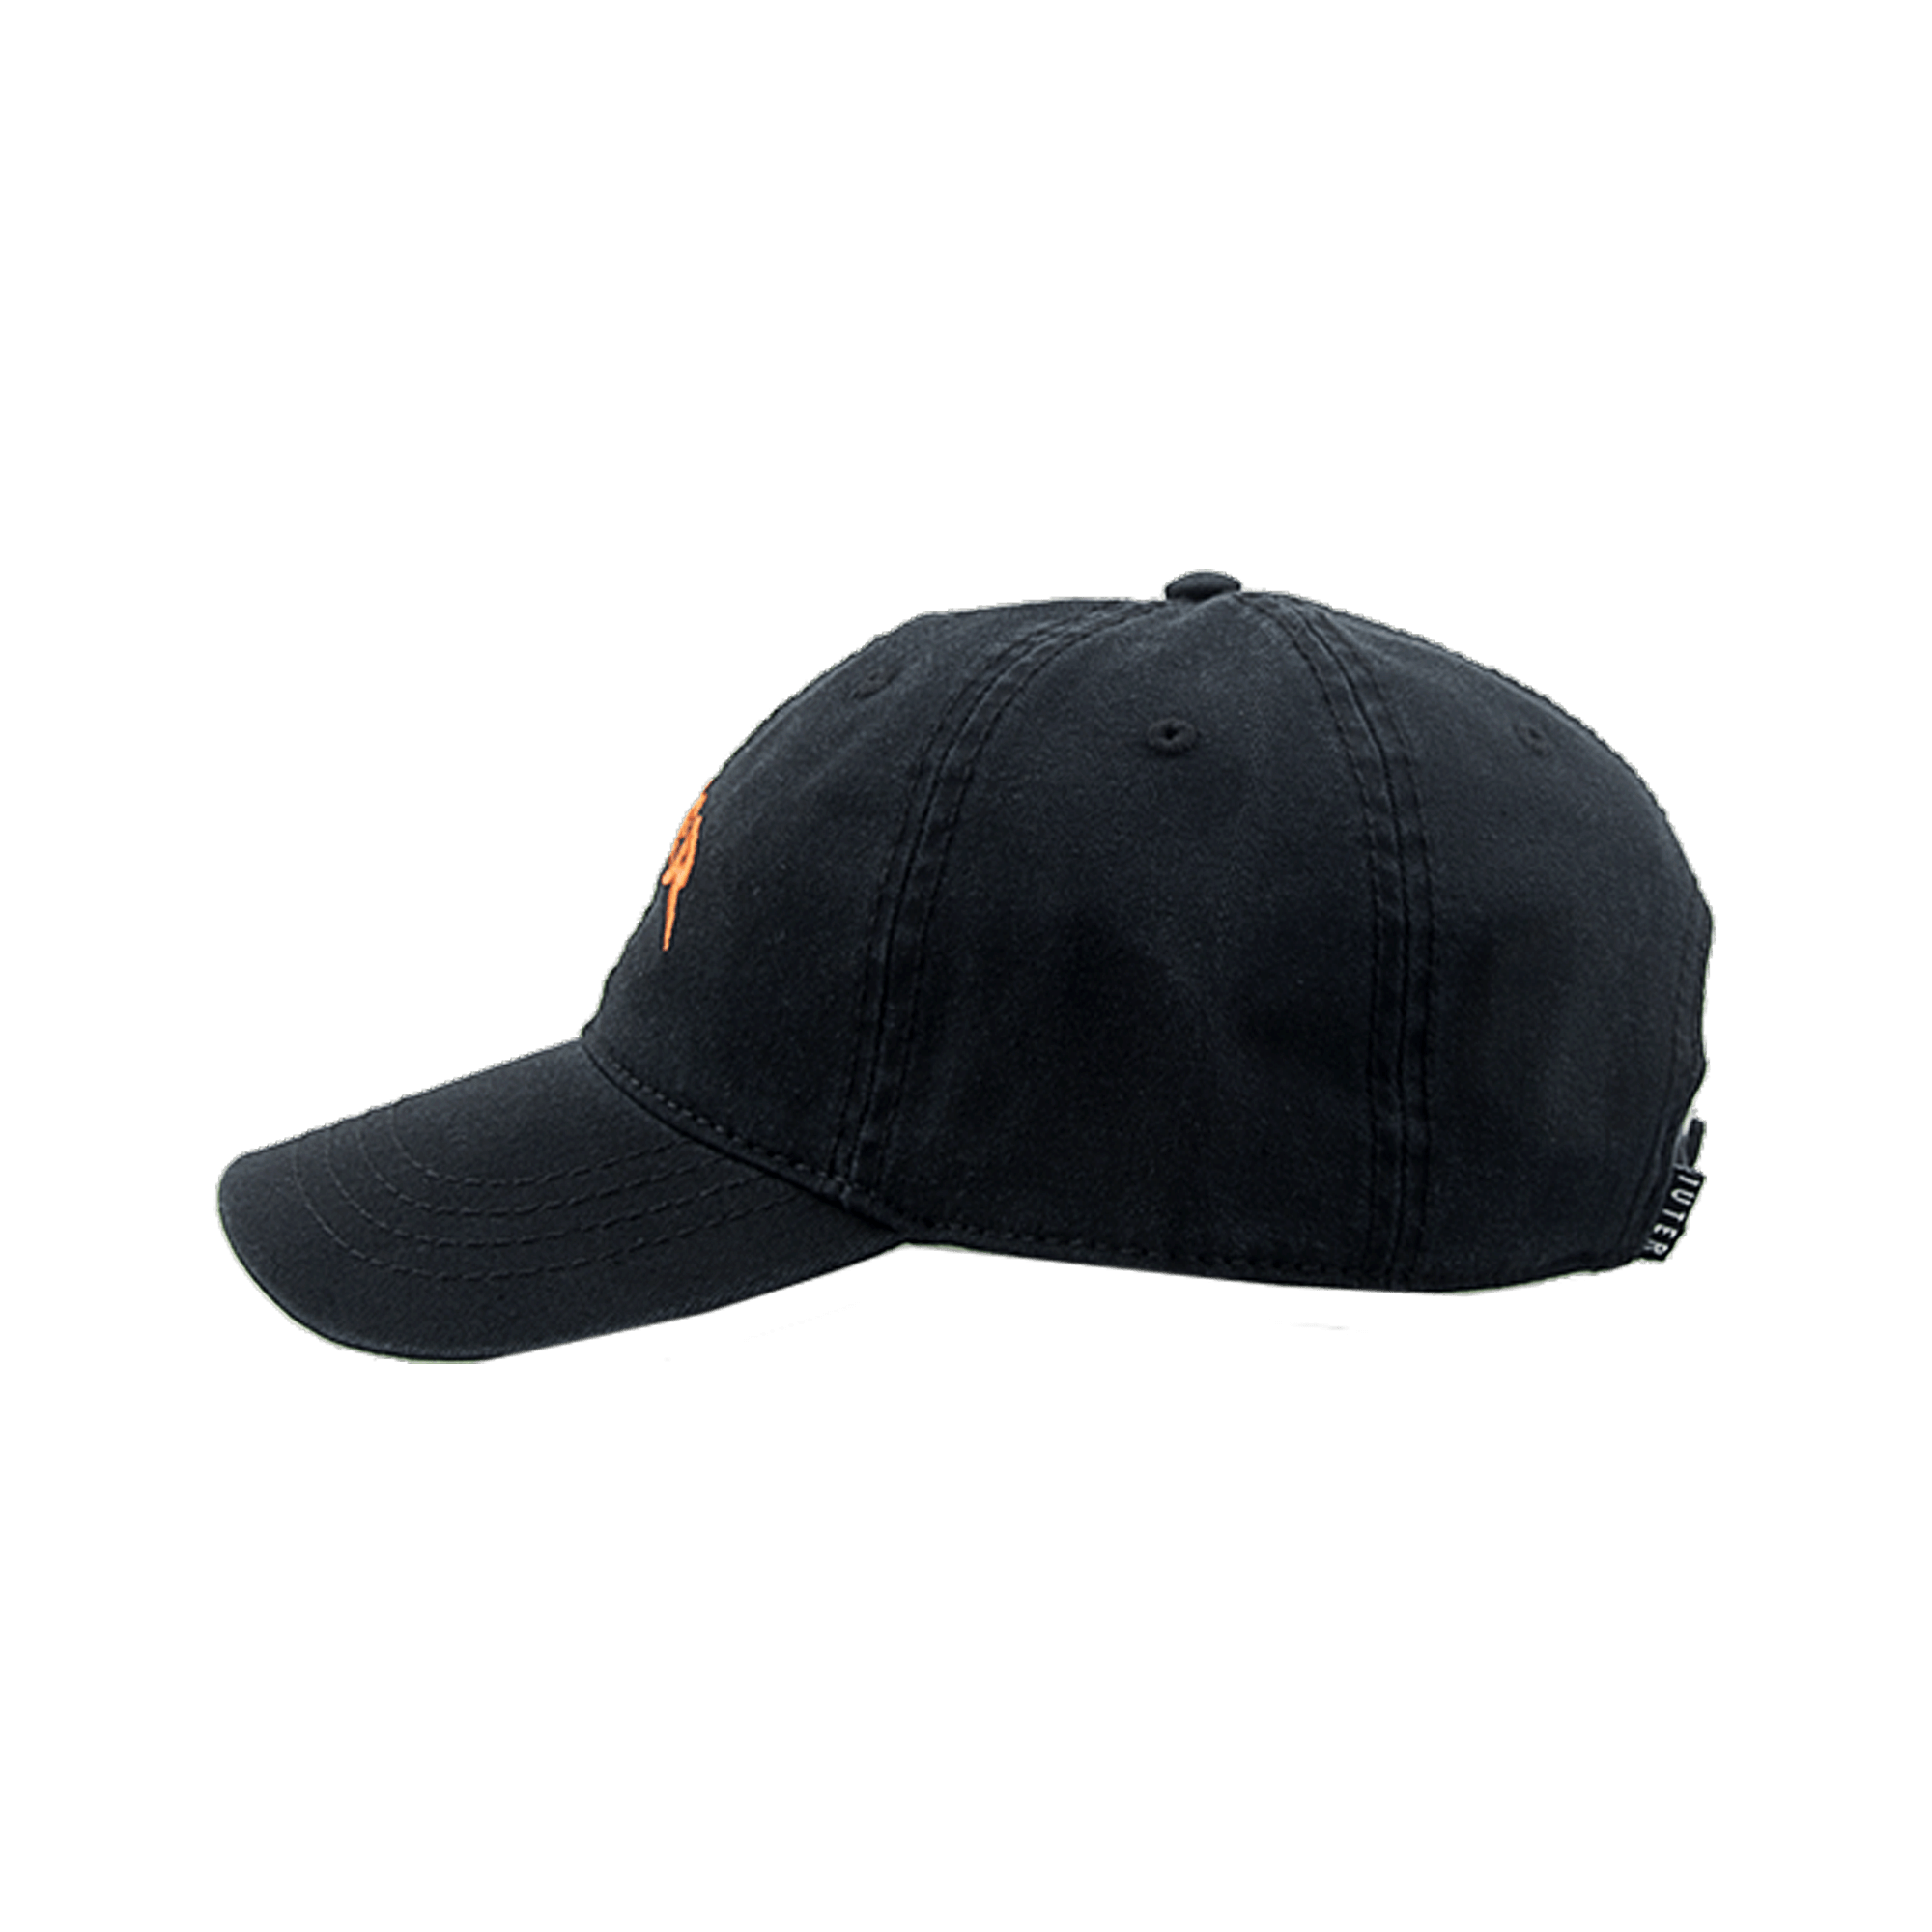 Tibetan Dad Hat black